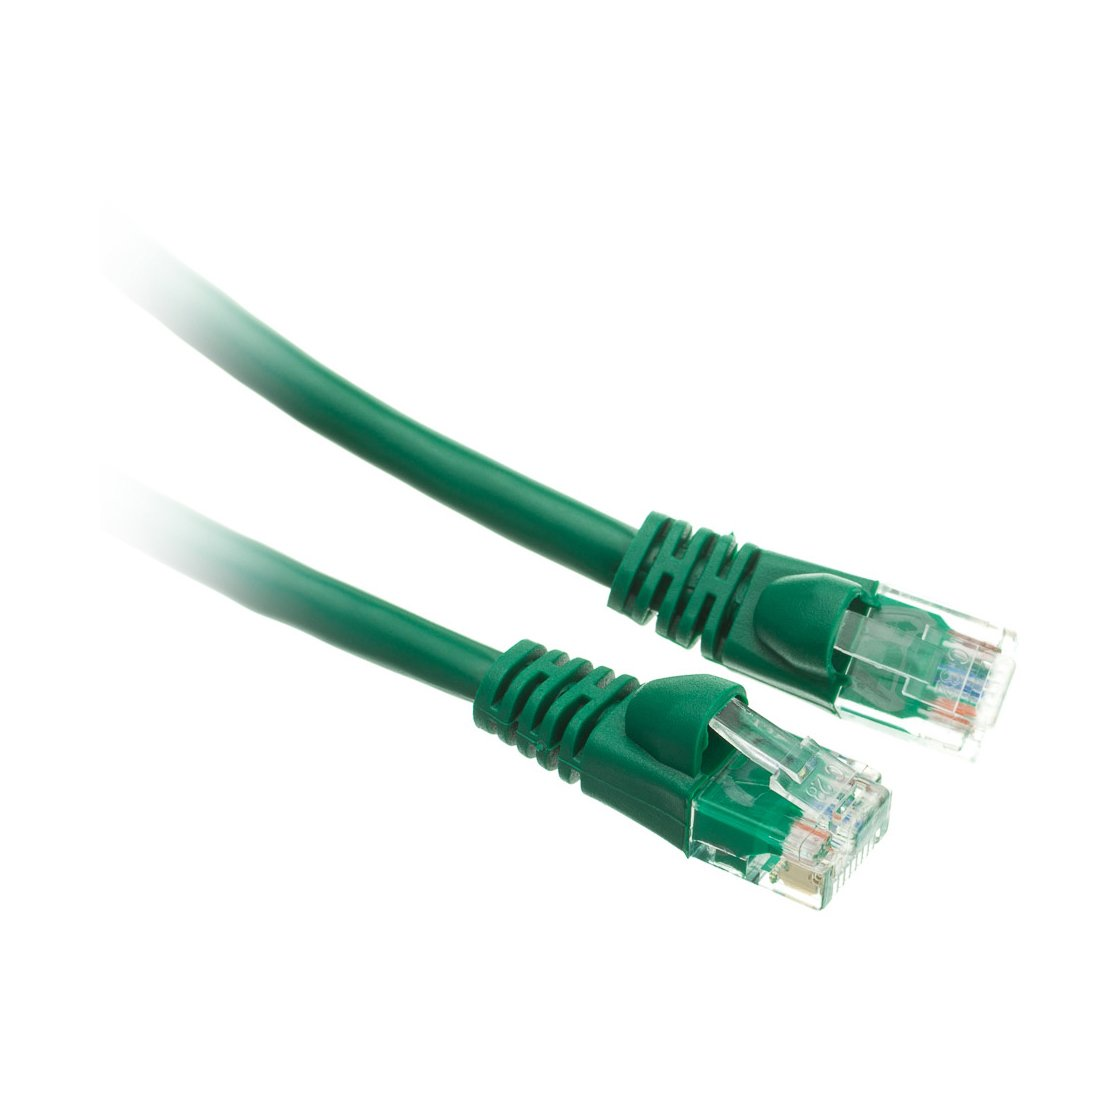 C&E Cat5e 14-Foot Ethernet Patch Cable, Snagless/Molded Boot, 20-Pack, Green (CNE49868) by C&E